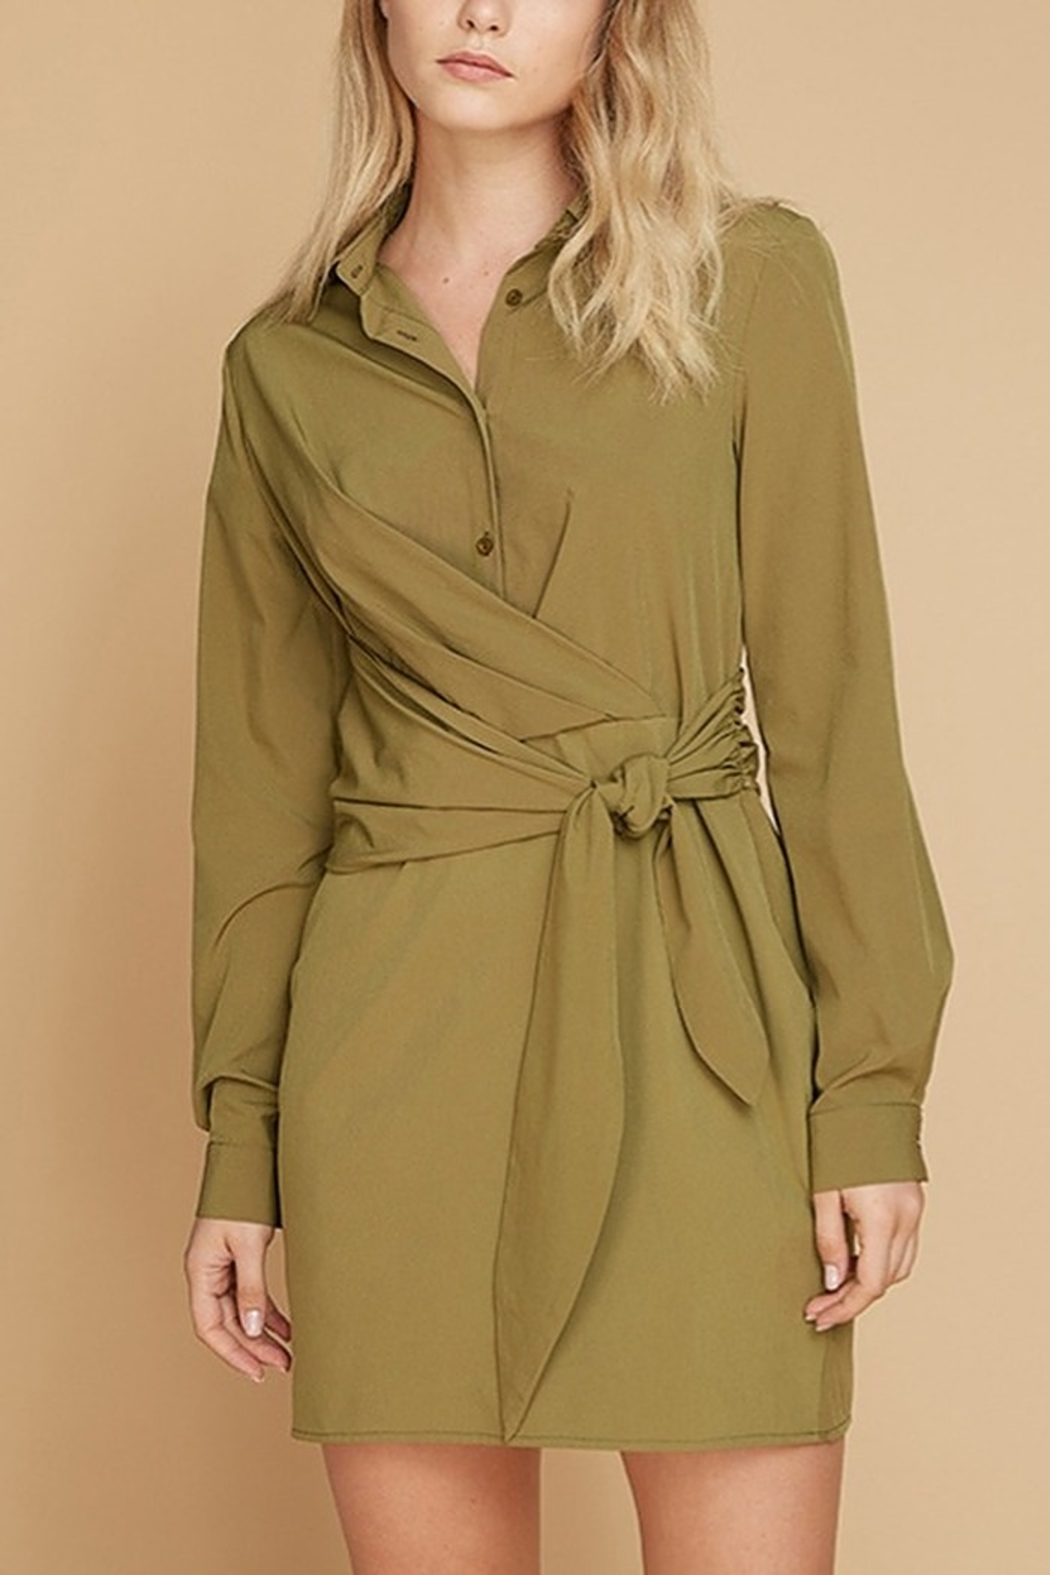 Lyn -Maree's Button Up Waist Tie Bow Dress - Main Image